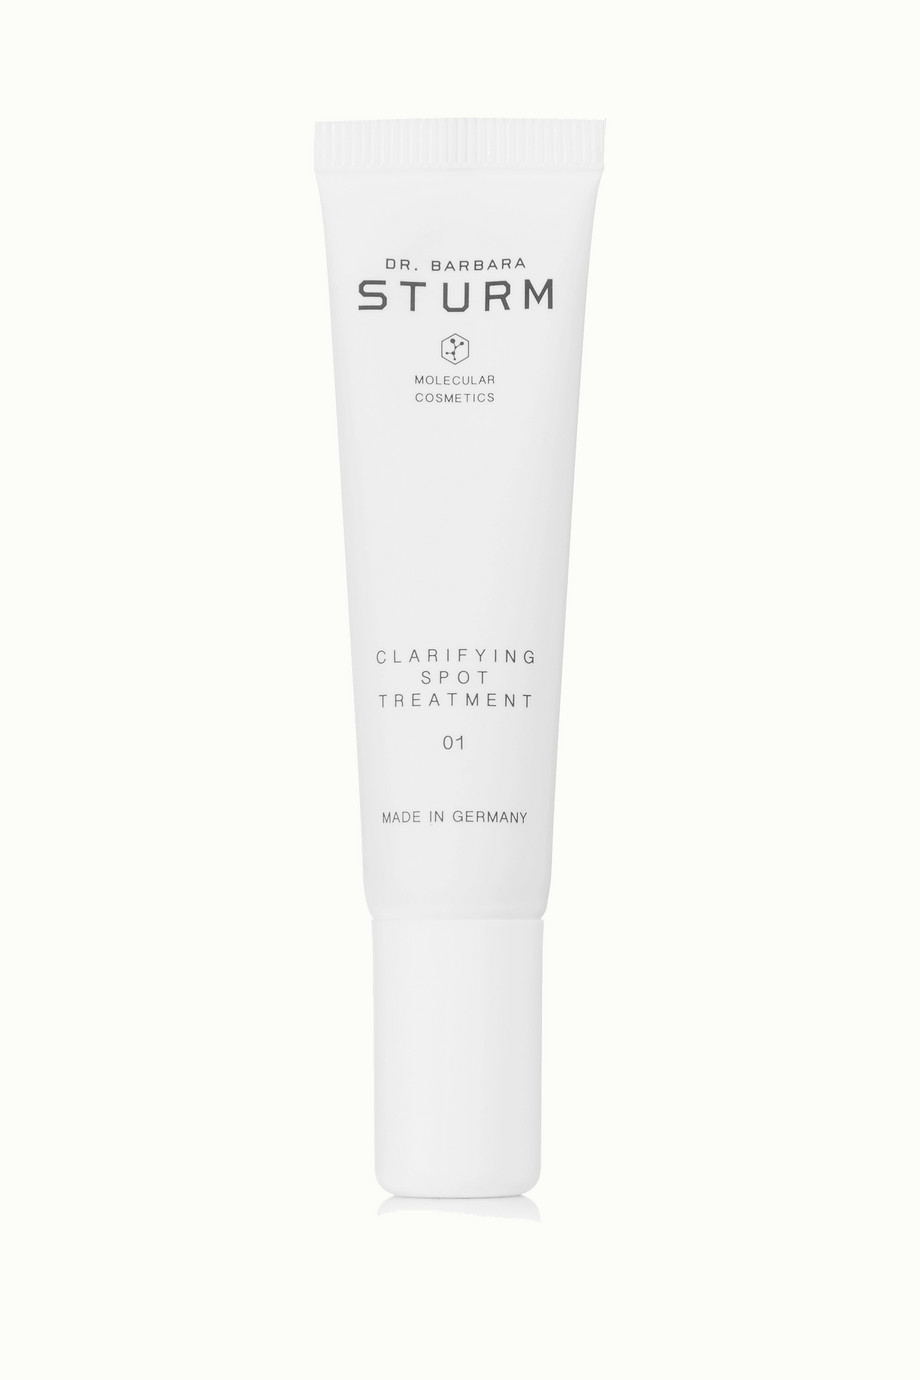 Dr. Barbara Sturm Clarifying Spot Treatment – 01, 15 ml – Anti-Pickel-Creme